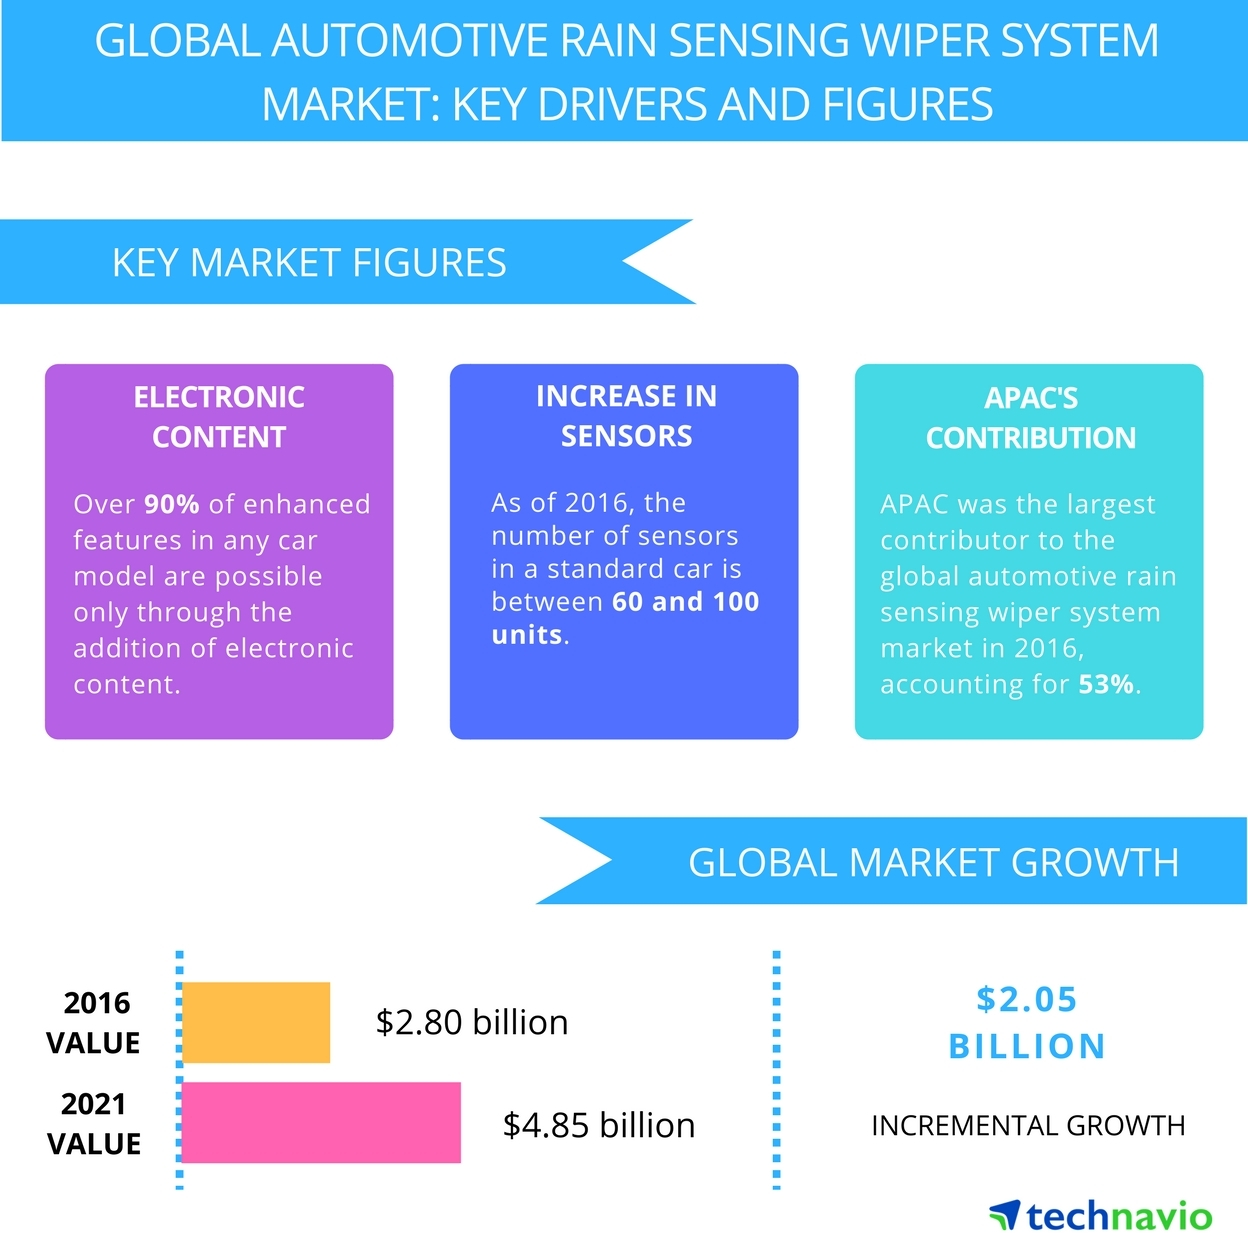 Technavio has published a new report on the global automotive rain sensing wiper system market from 2017-2021. (Graphic: Business Wire)